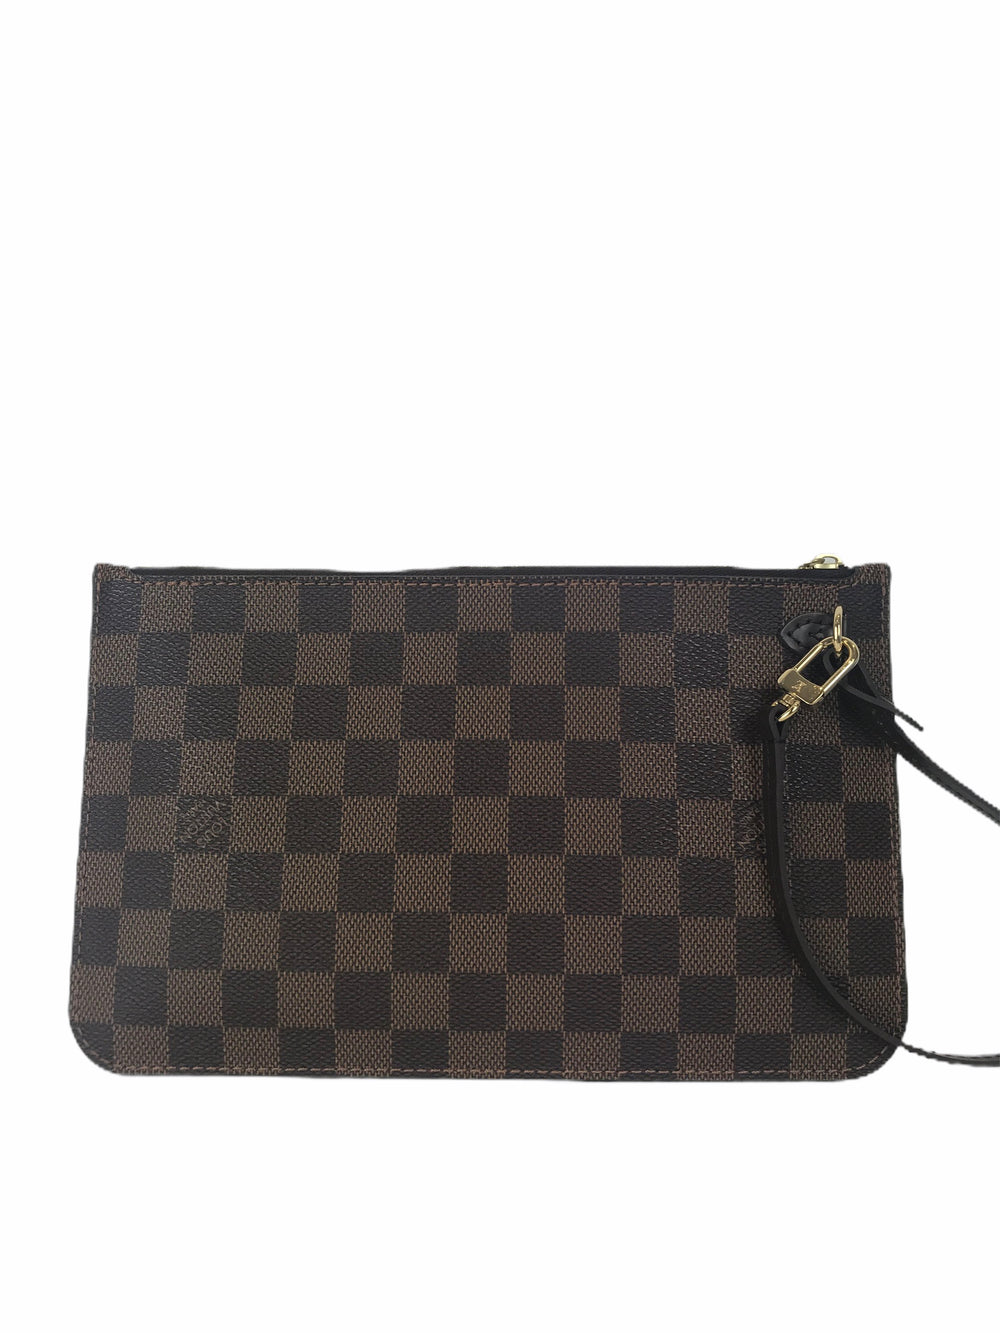 Louis Vuitton Damier Pochette - As Seen on Instagram 16/08/2020